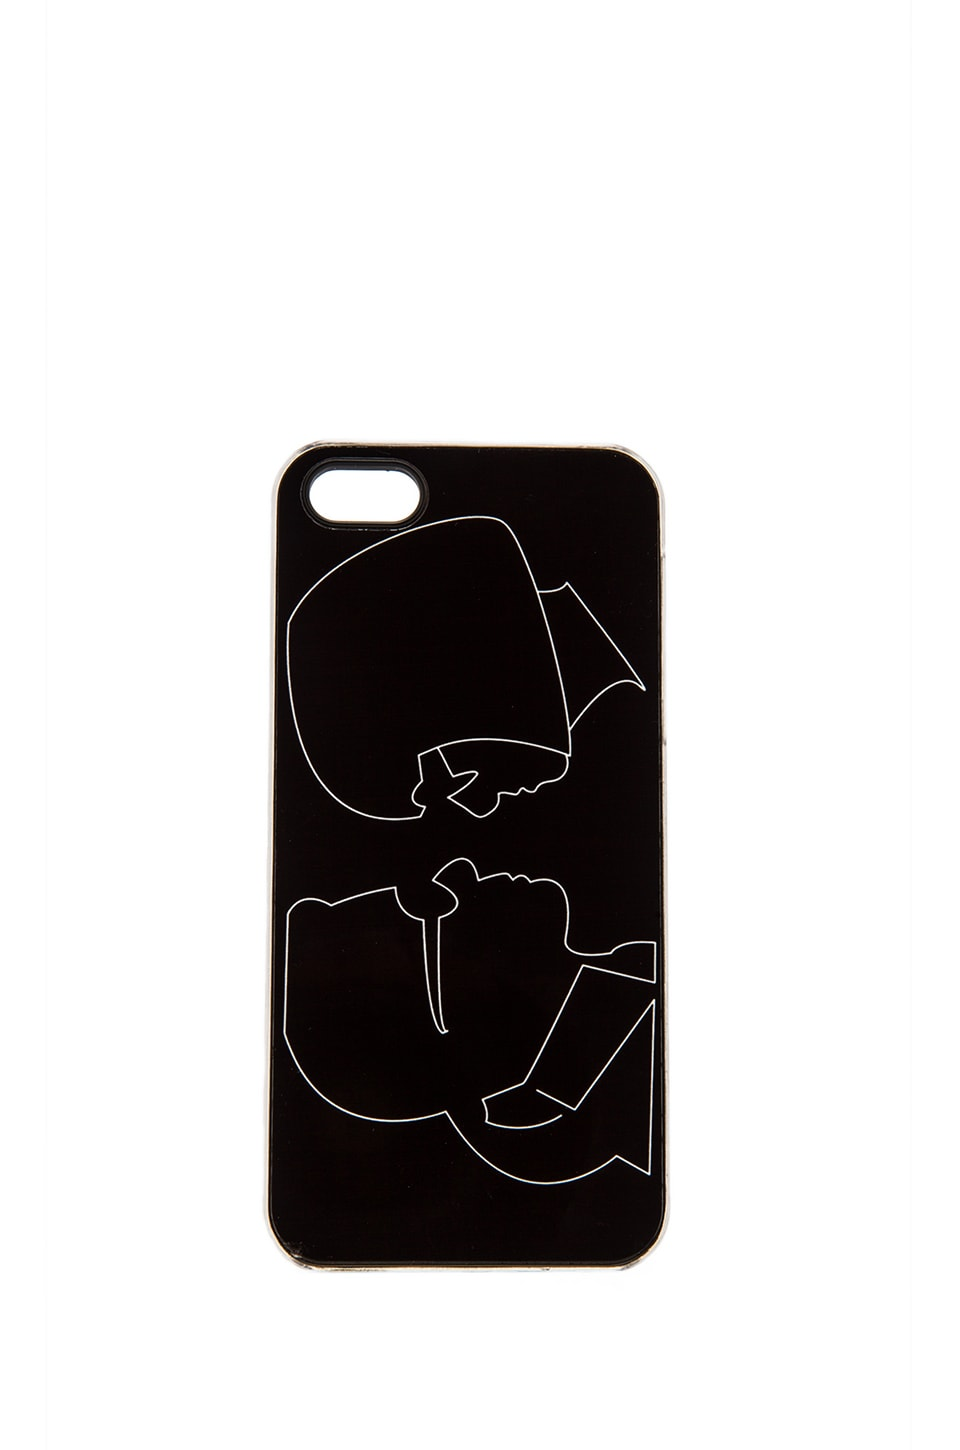 ZERO GRAVITY Besties iPhone 5 Case in Black